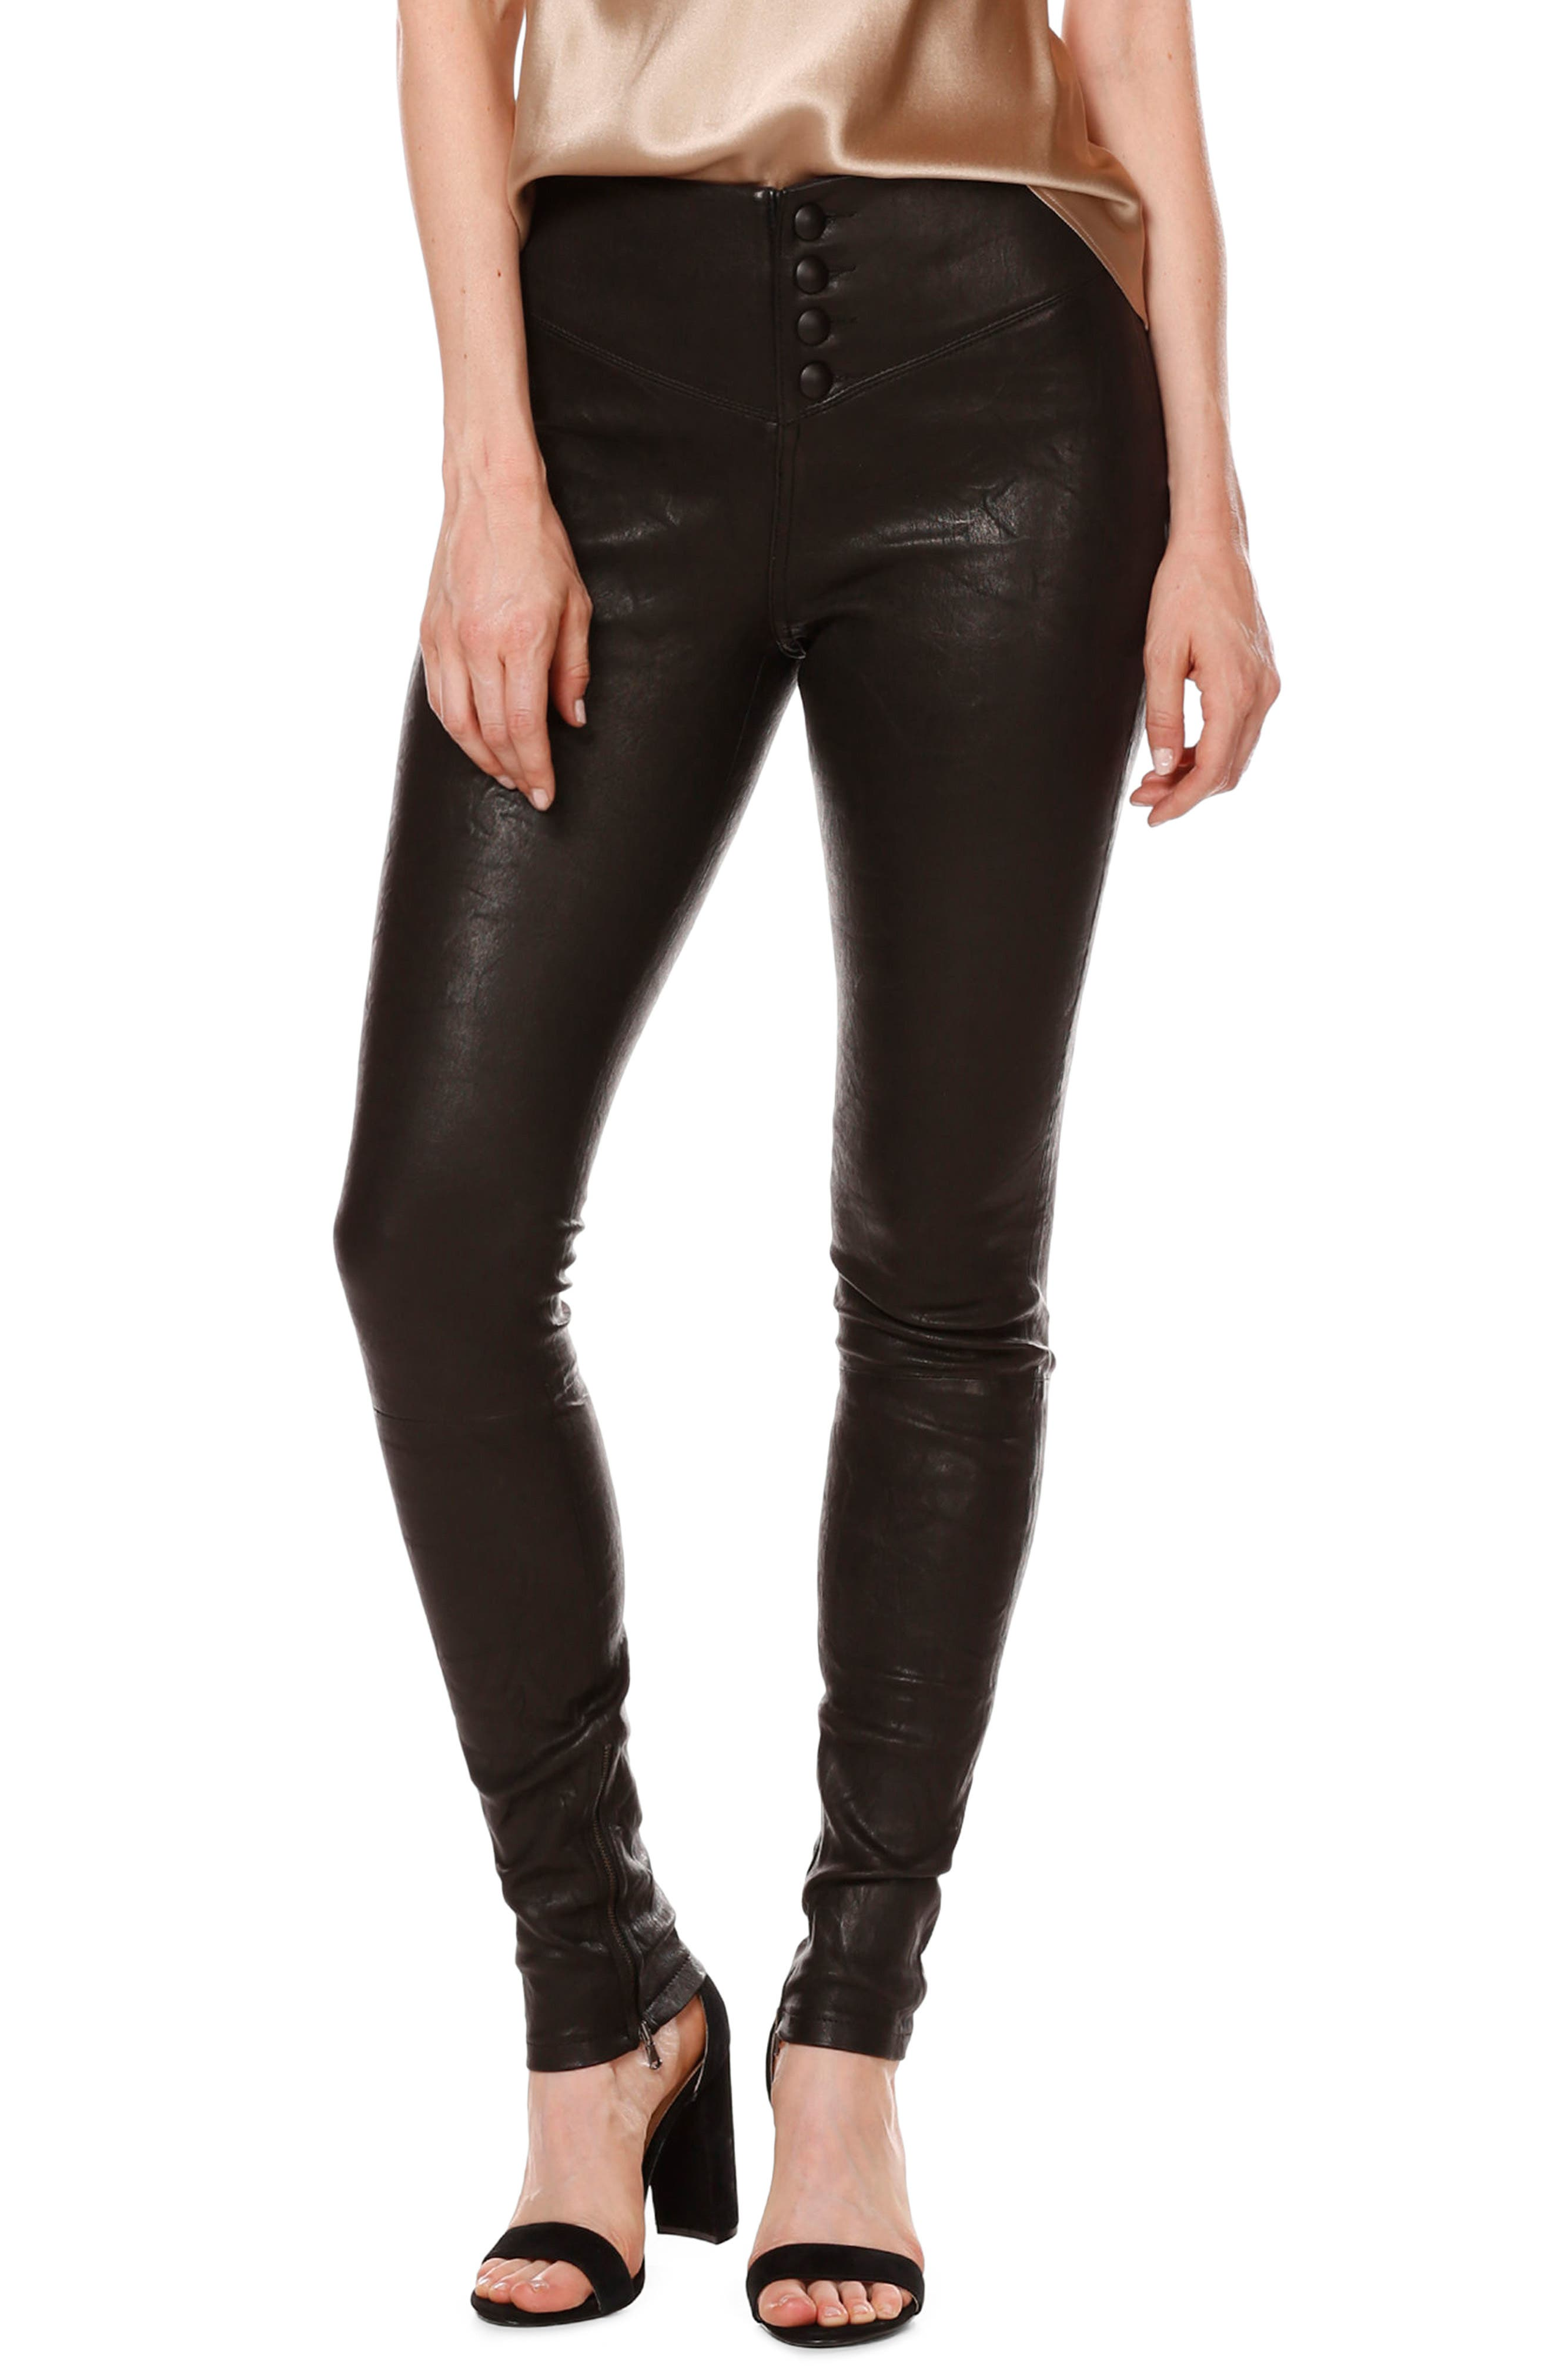 Rosie HW x PAIGE Ellery Ankle Zip Leather Pants,                             Alternate thumbnail 4, color,                             Black Leather